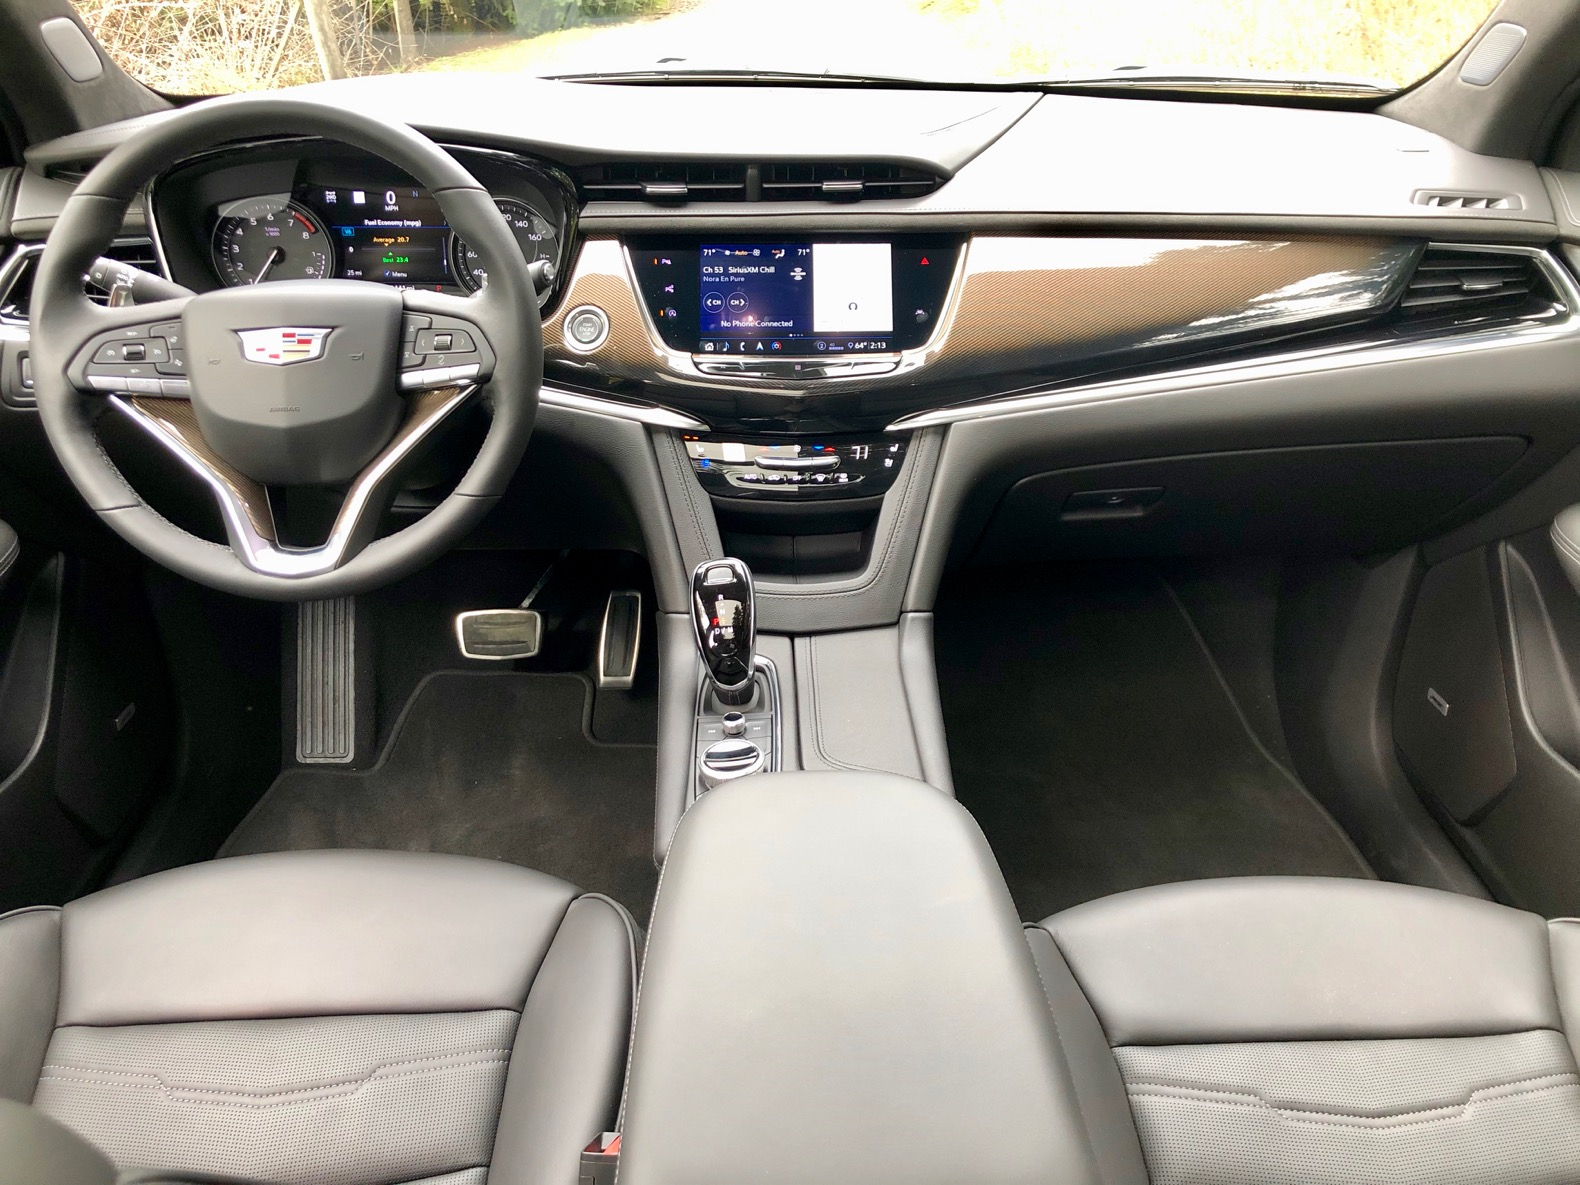 2020 Cadillac Xt6 Review Cadillac Joins The Crossover Craze The Torque Report